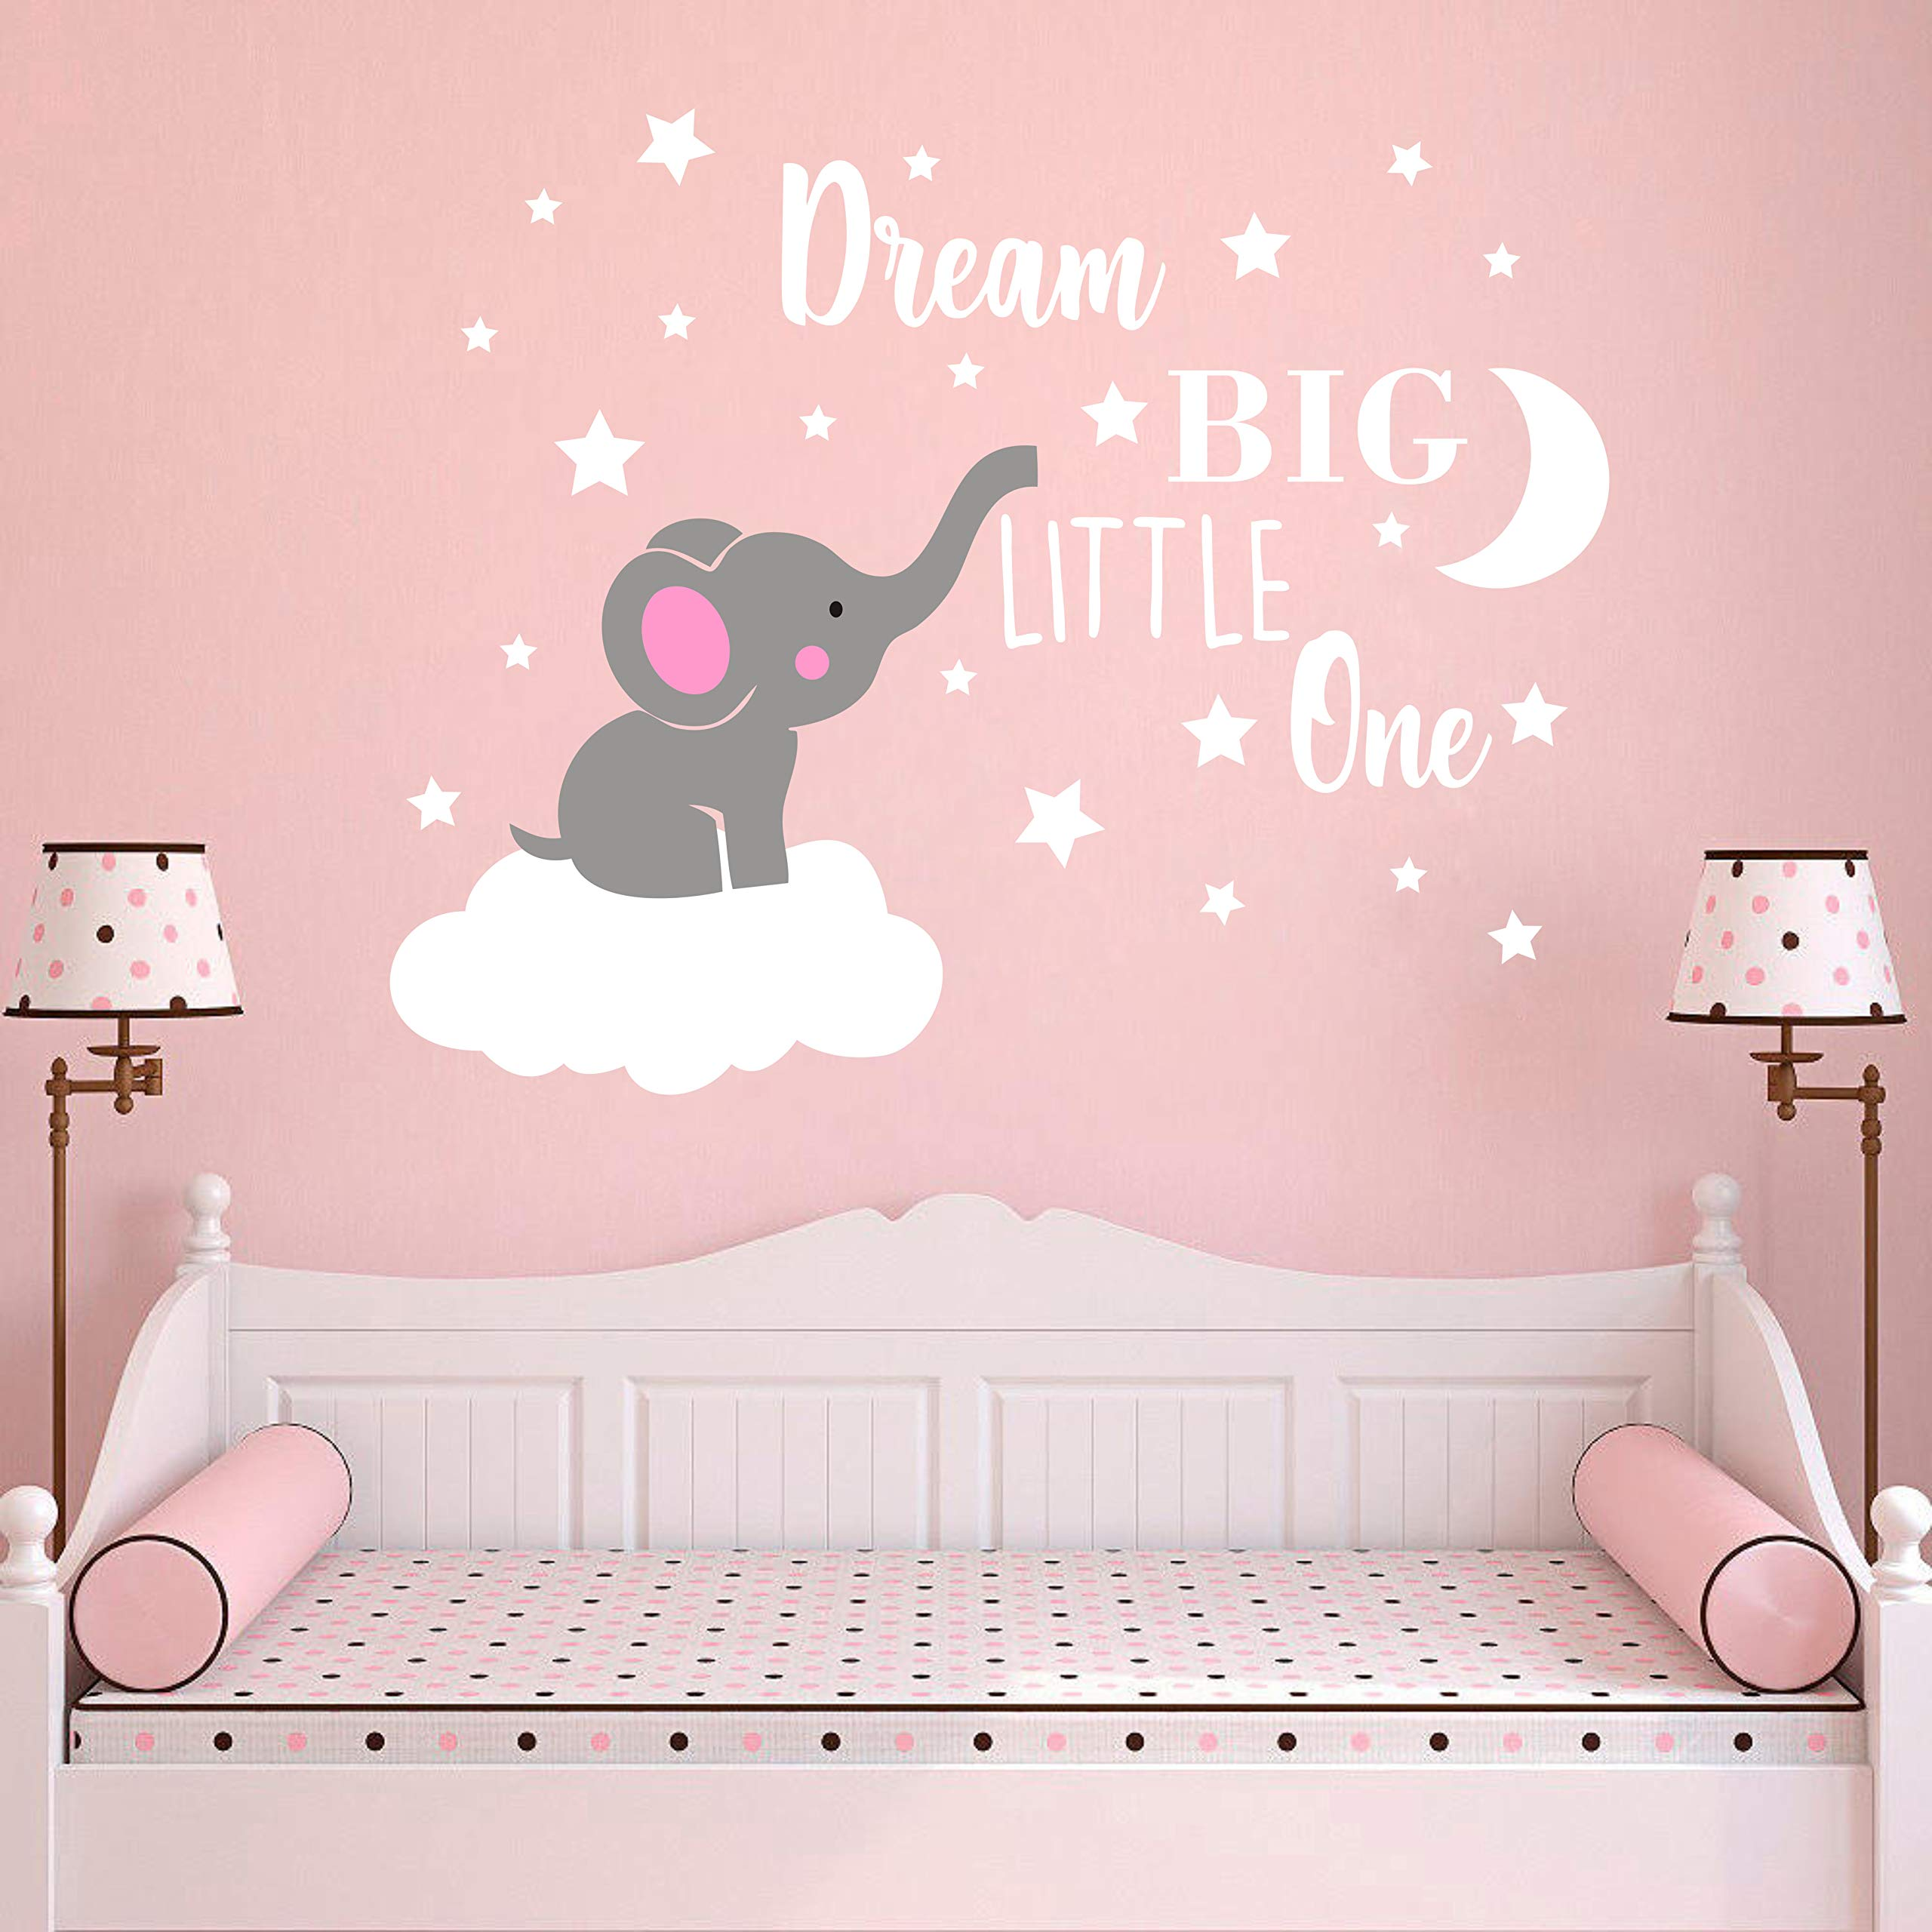 Dream Big Little One Elephant Wall Decal, Quote Wall Stickers, Baby Room Wall Decor, Vinyl Wall Decals for Children Baby Kids Boy Girl Bedroom Nursery Decor(Y42) (Soft Pink, White(Girl)) by GESTYZ